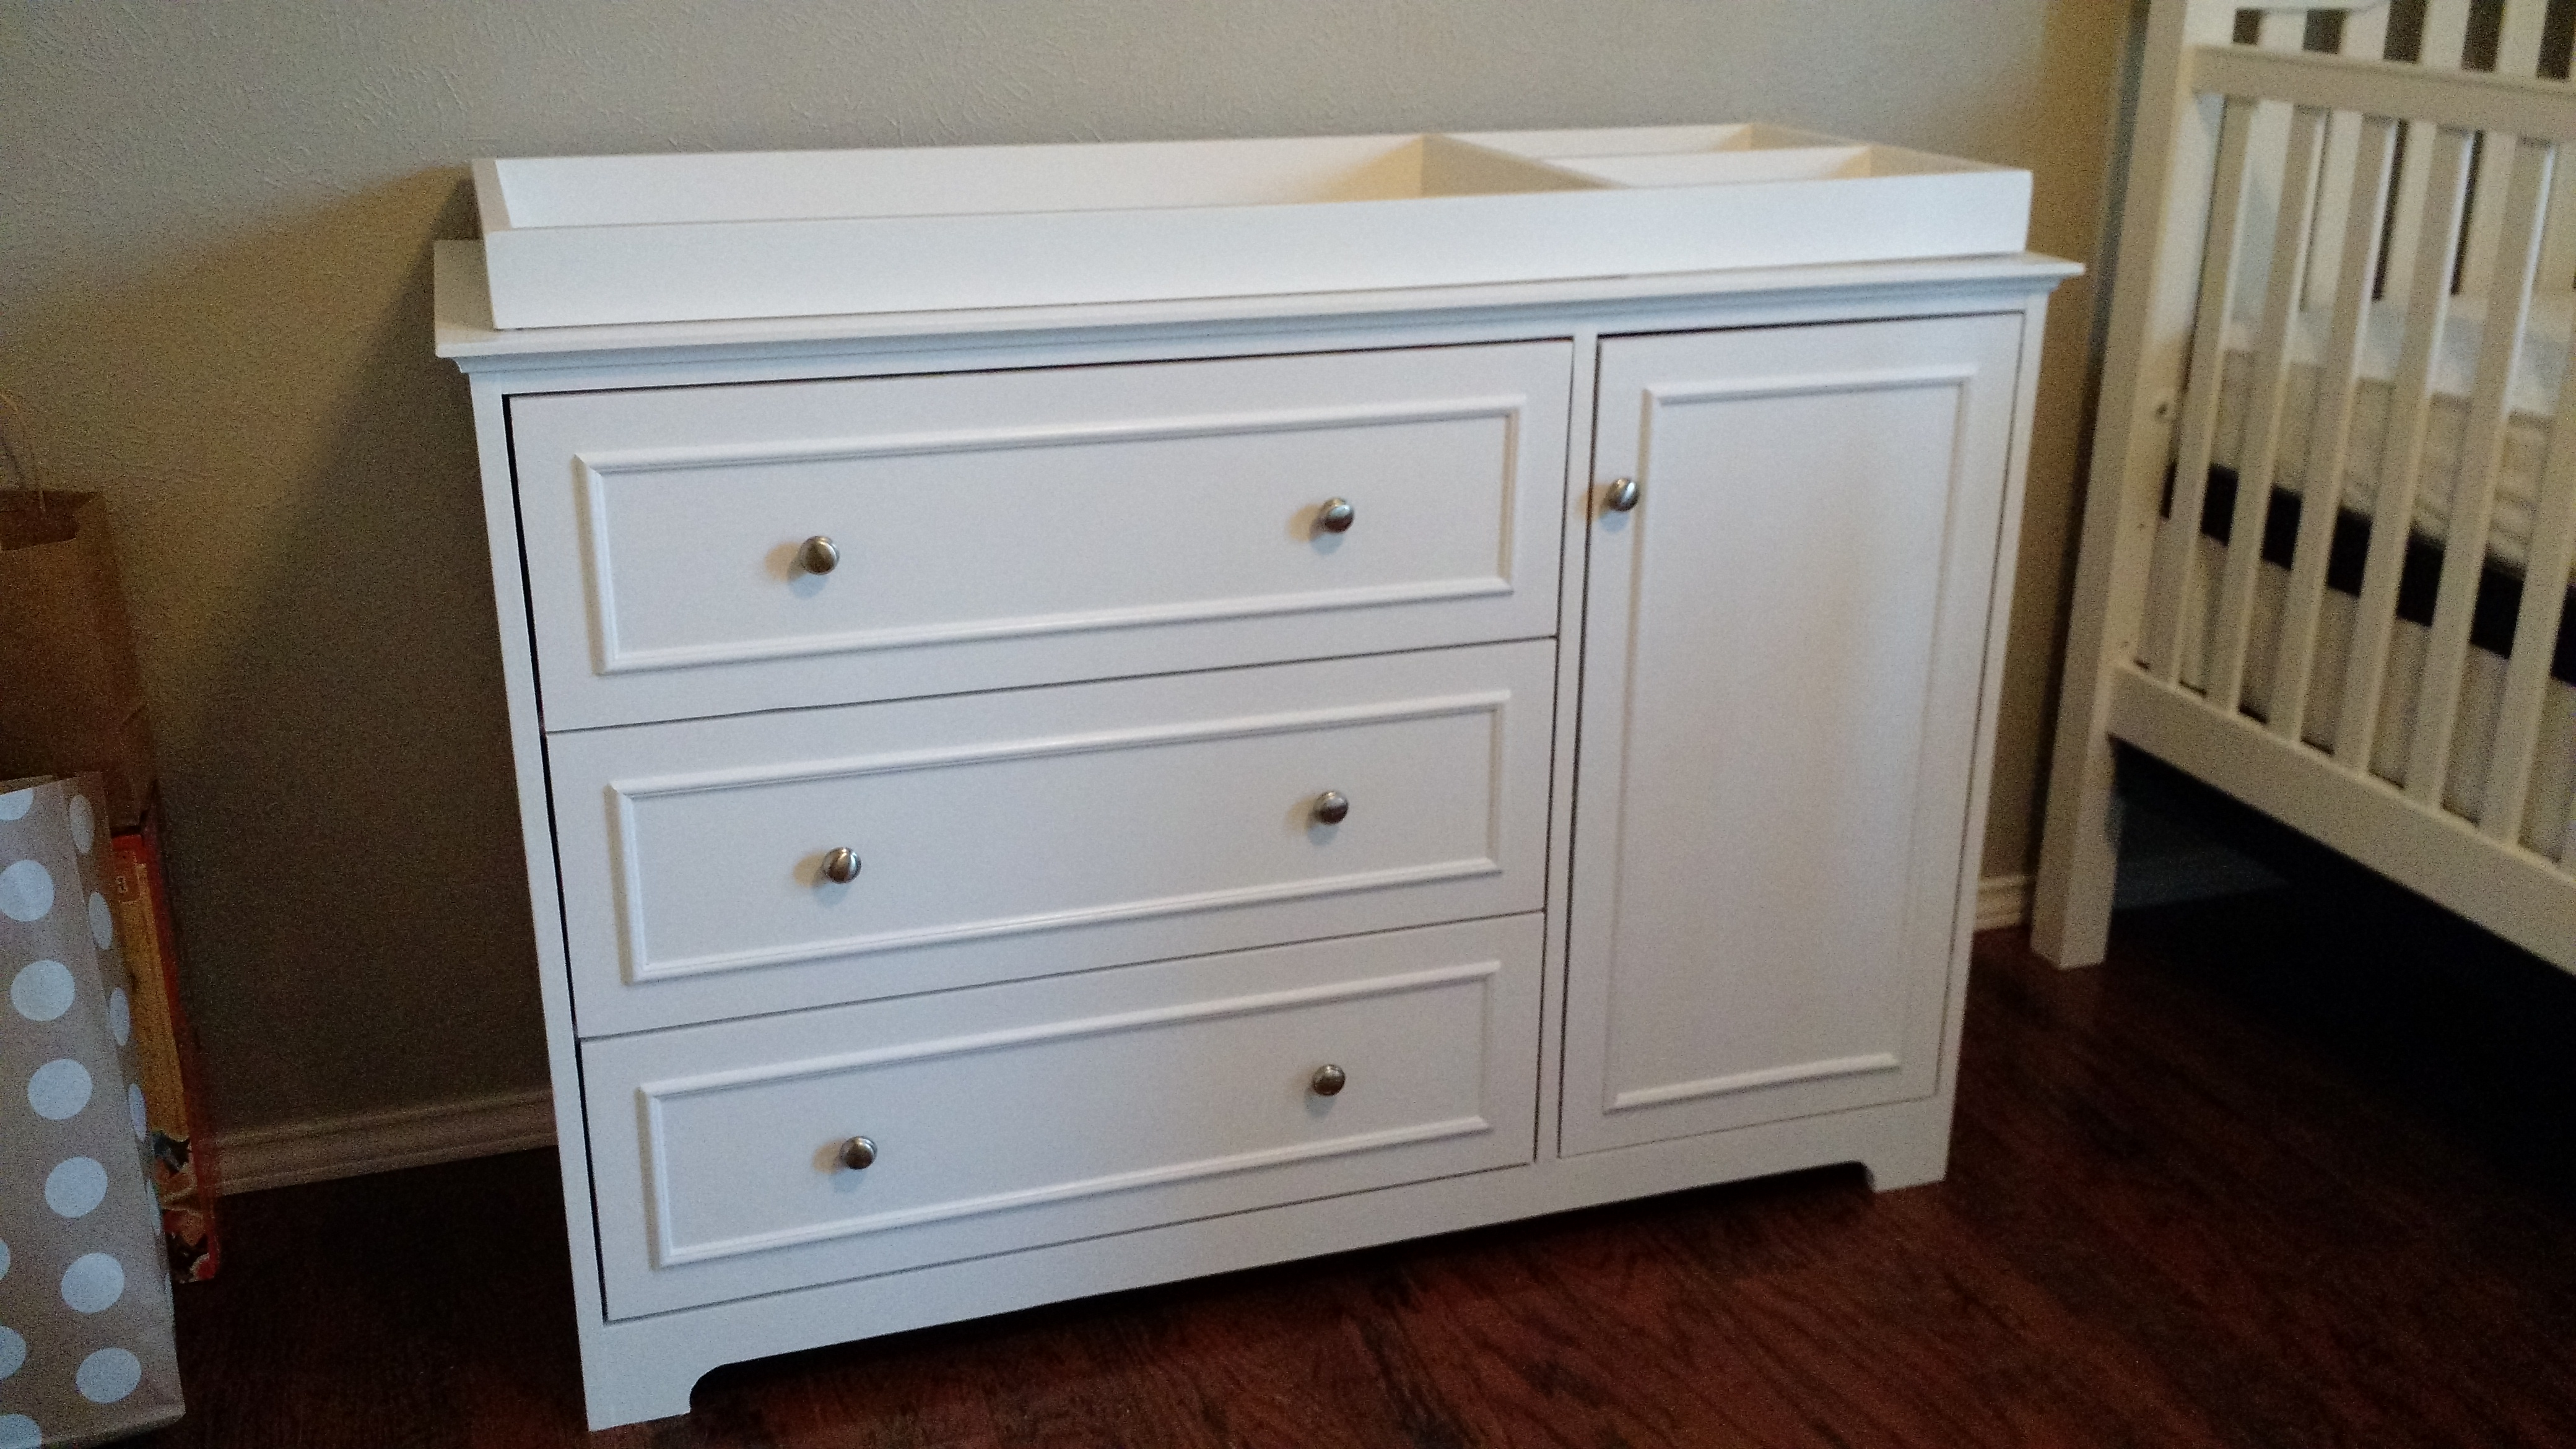 Best white changing table dresser ana white | changing table / dresser - diy projects gxtippa